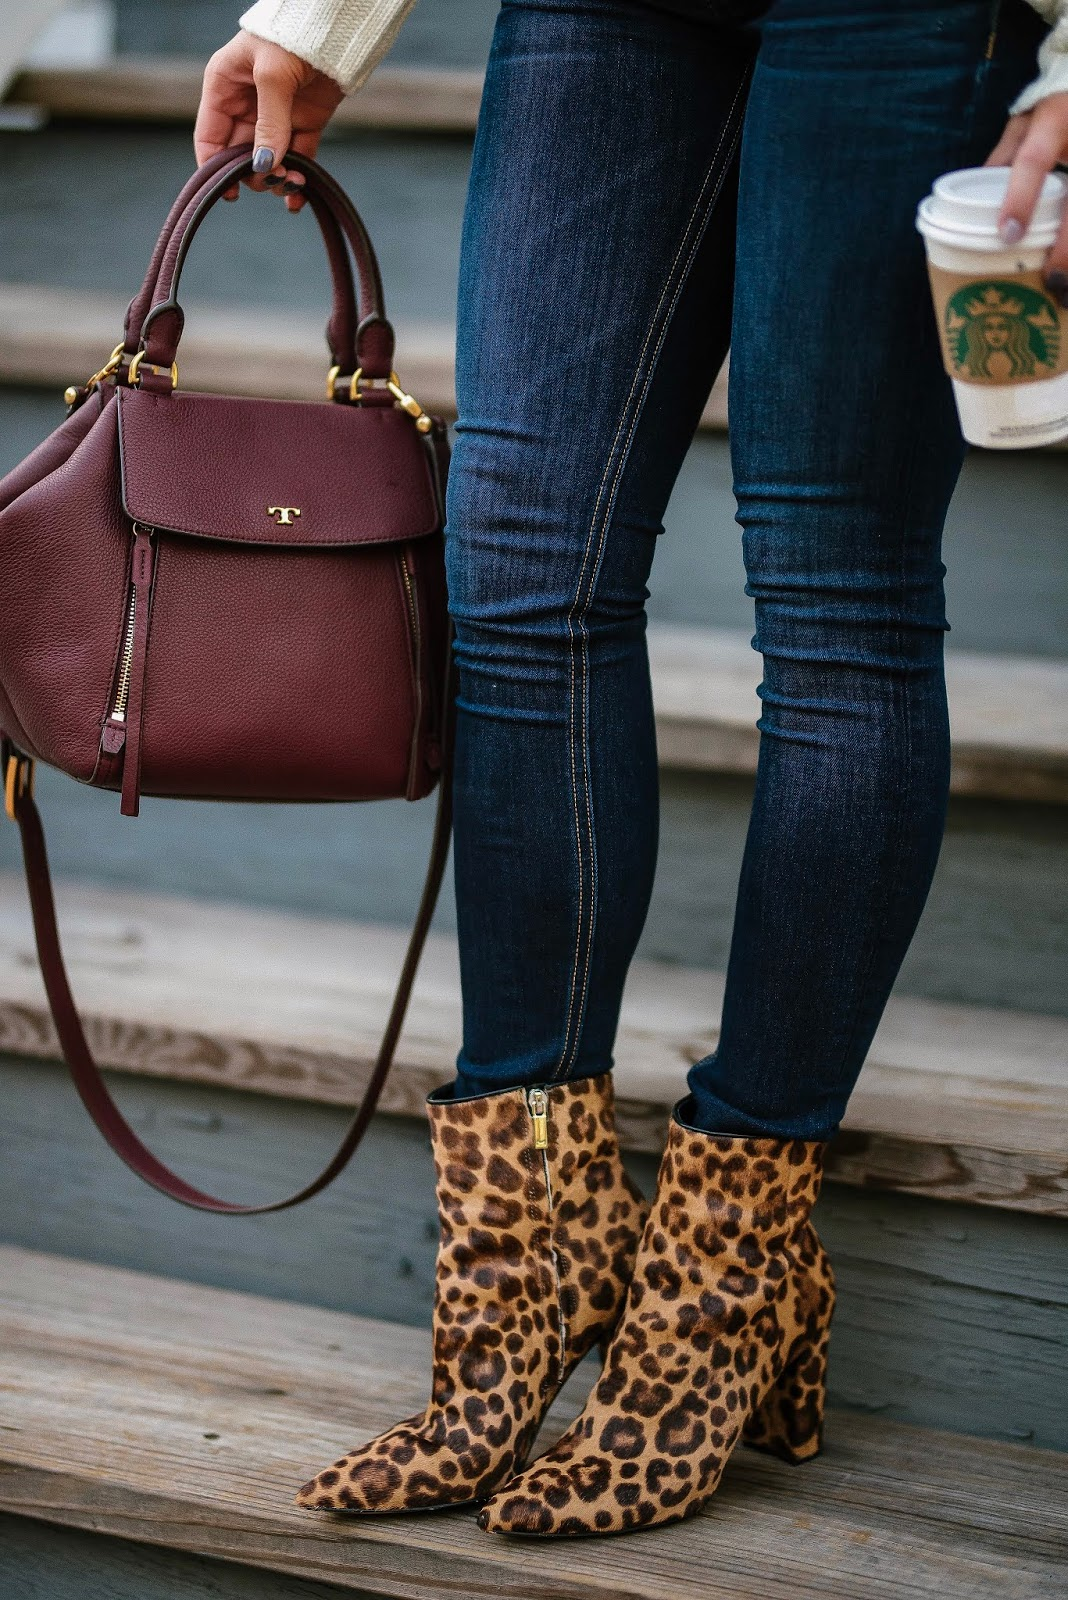 Fall Style: Tory Burch Half Moon Satchel and Leopard Booties - Something Delightful Blog